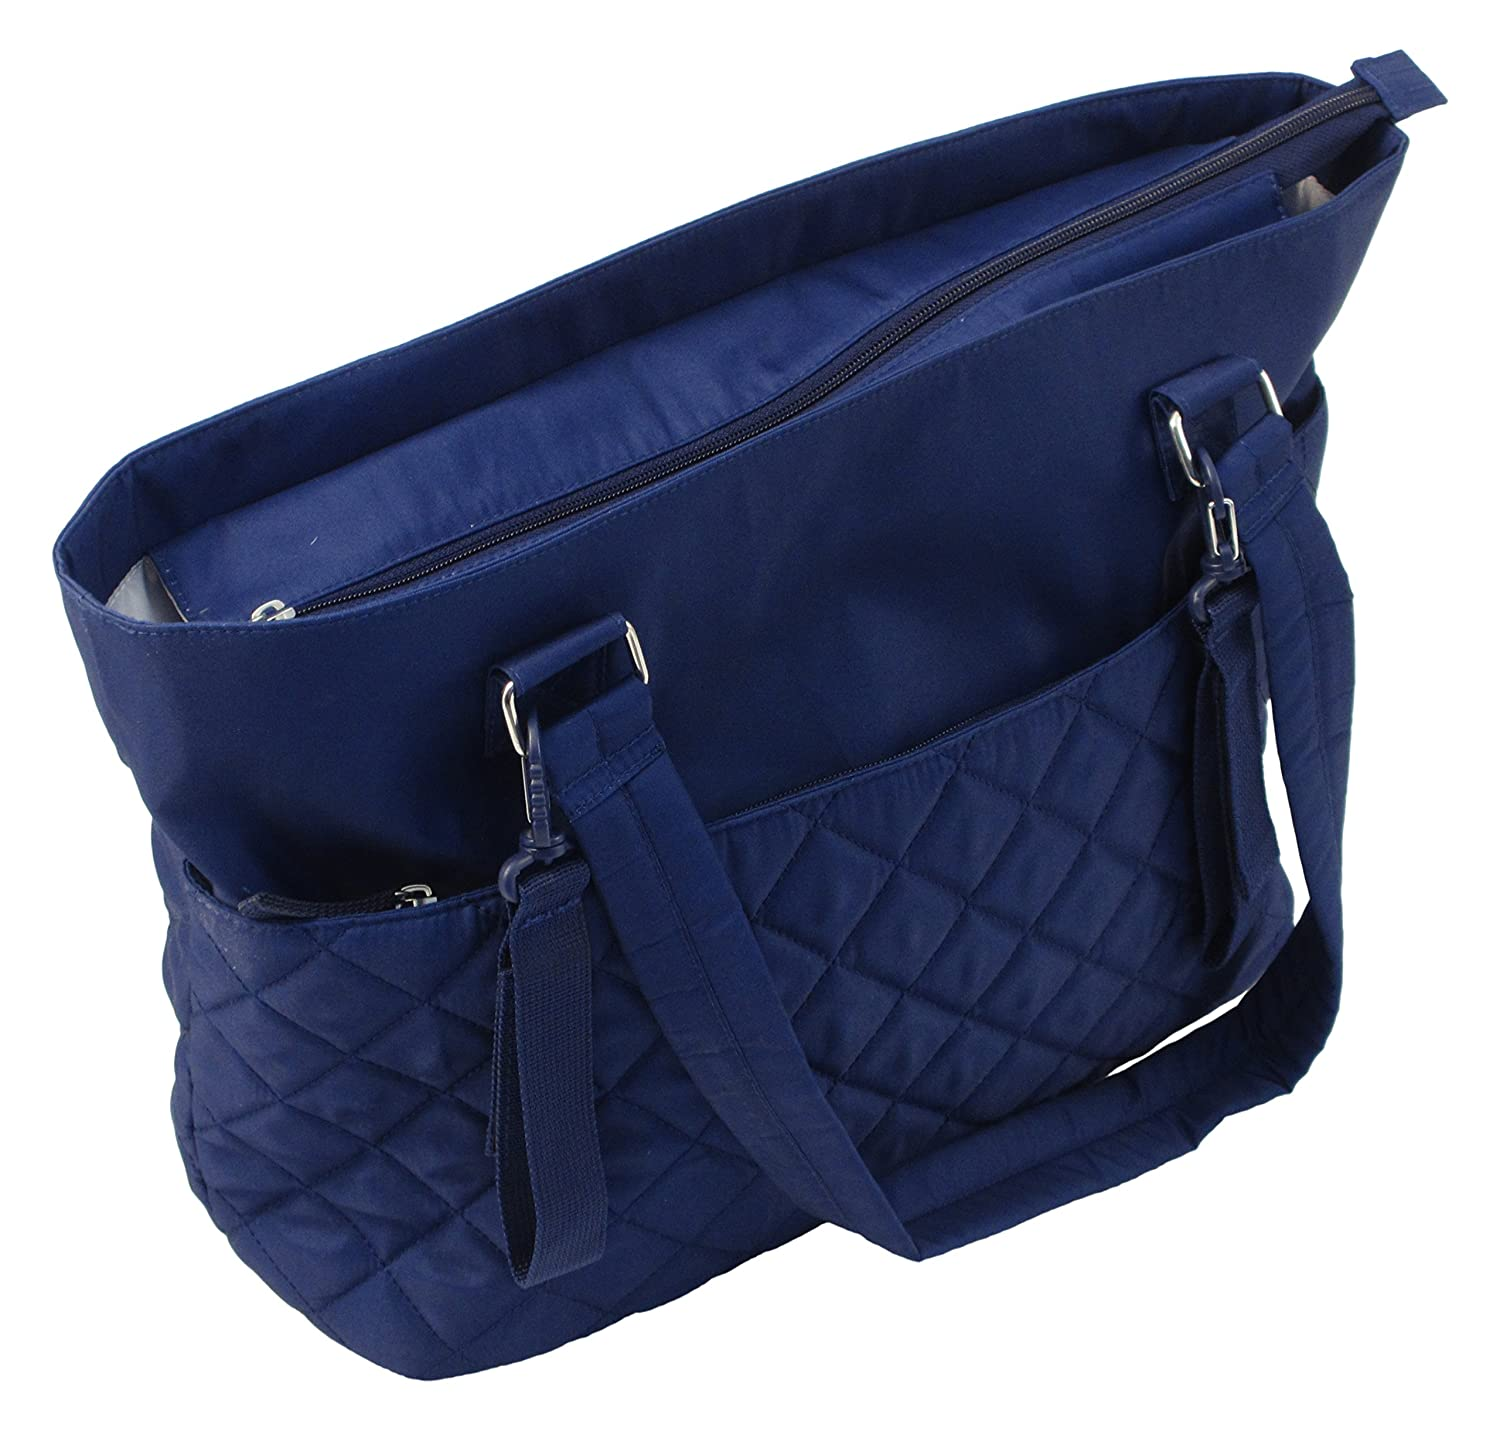 Summer Infant Quilted Tote Changing Bag - Sapphire Blue   B015AVGRO6